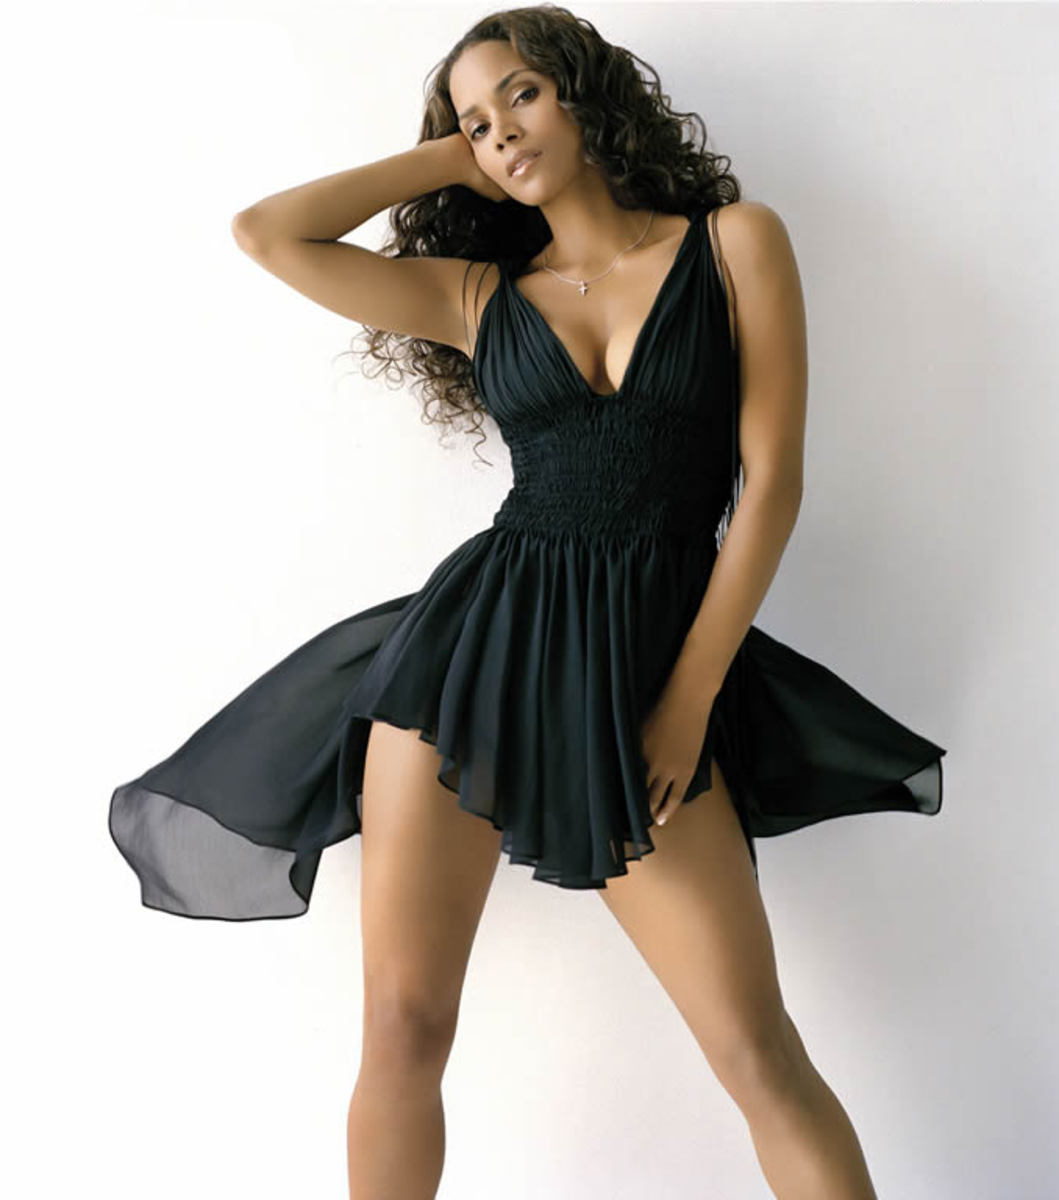 Halle Berry in a short black dress